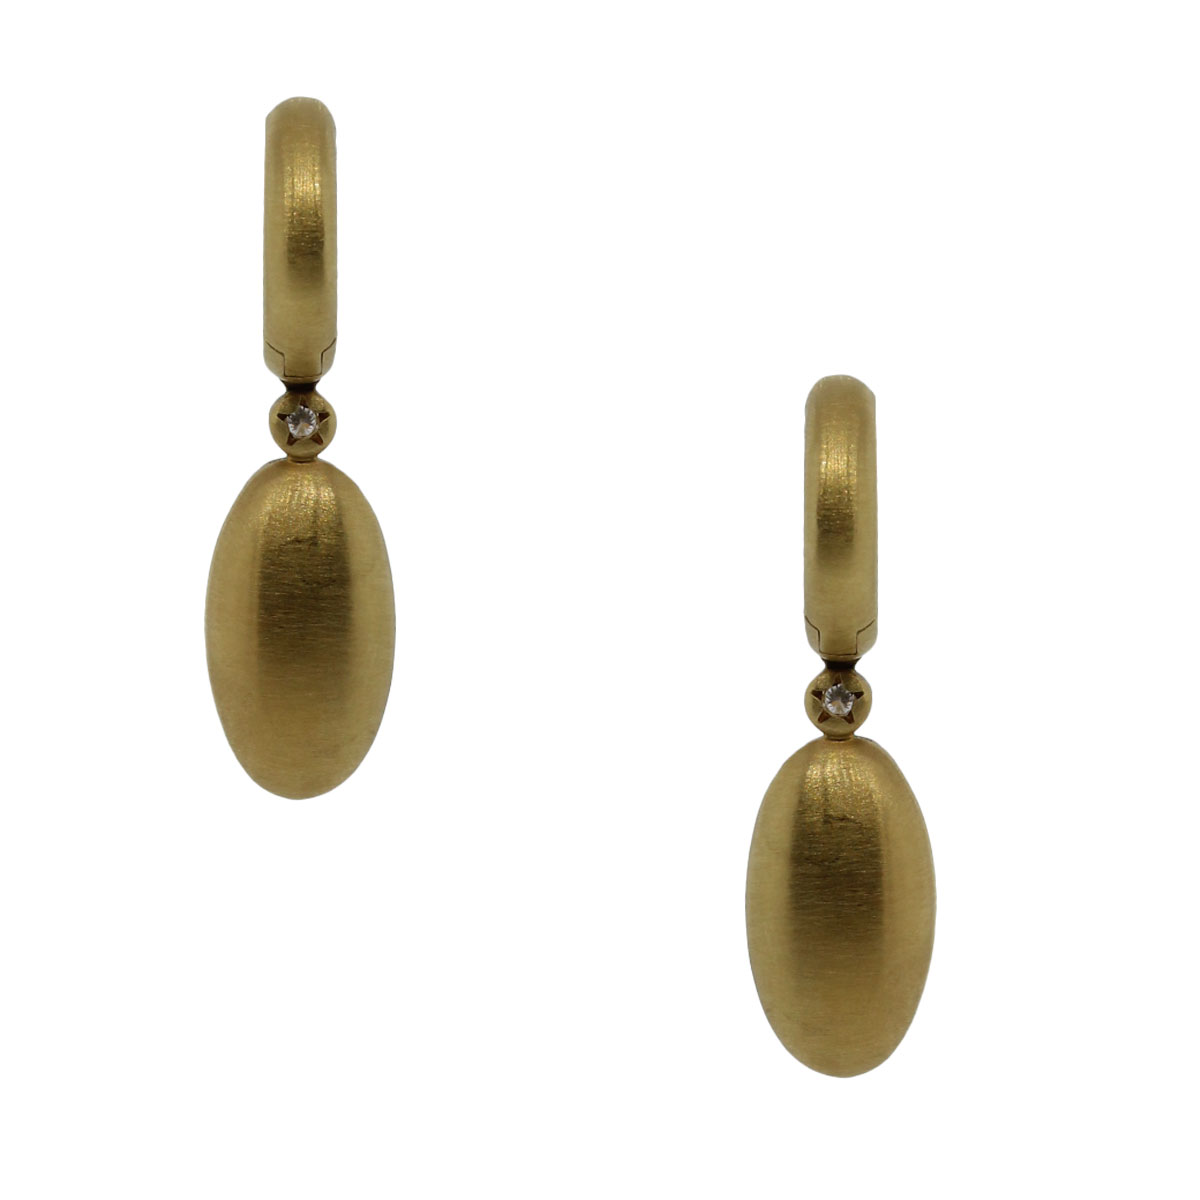 hstern earrings h 18k yellow gold clear quartz earrings 7229